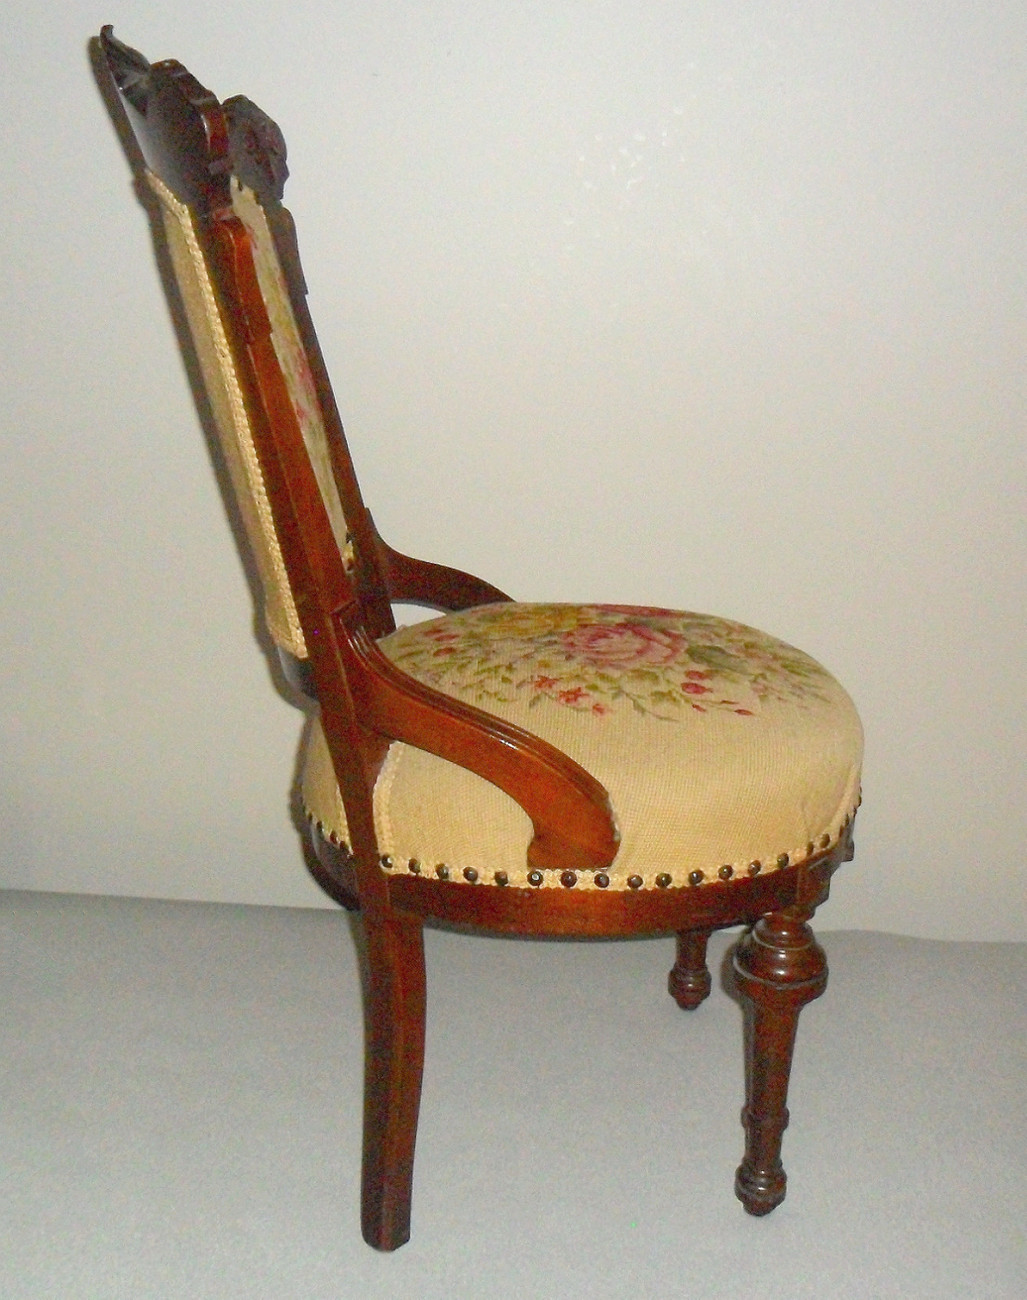 Antique Victorian Needlepoint Parlor Chair Unknown